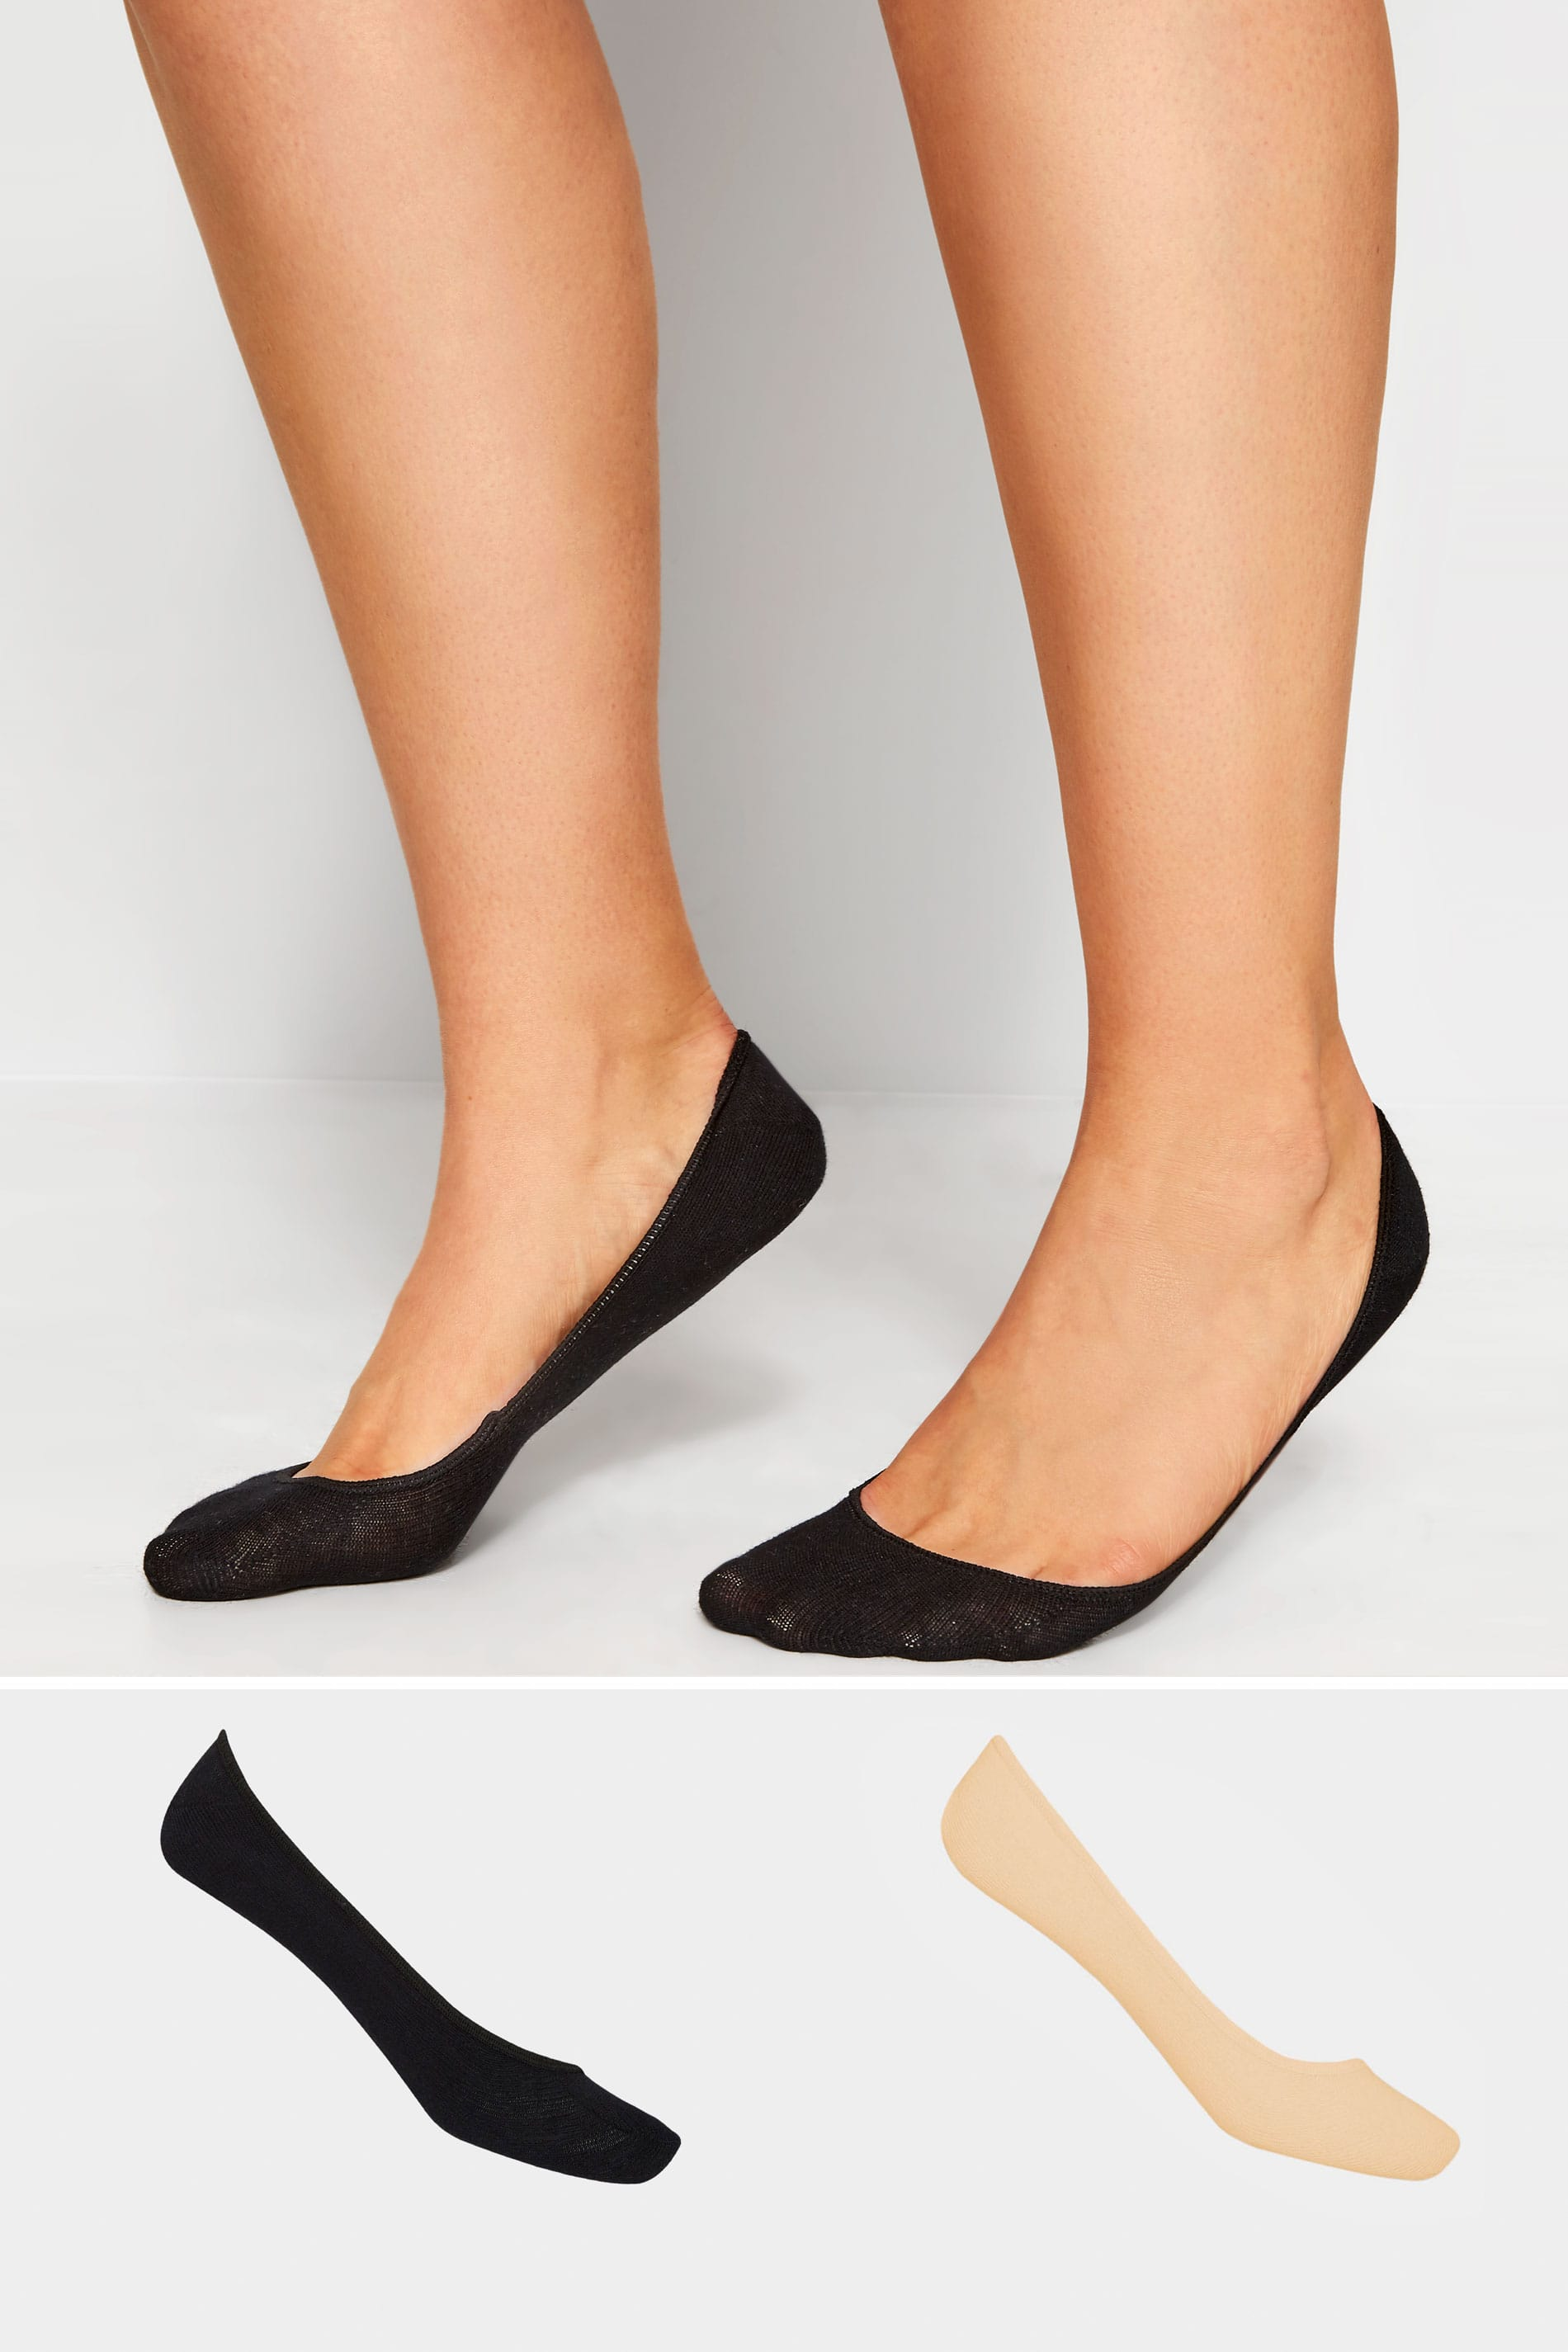 2 PACK Black & Nude Footsie Socks